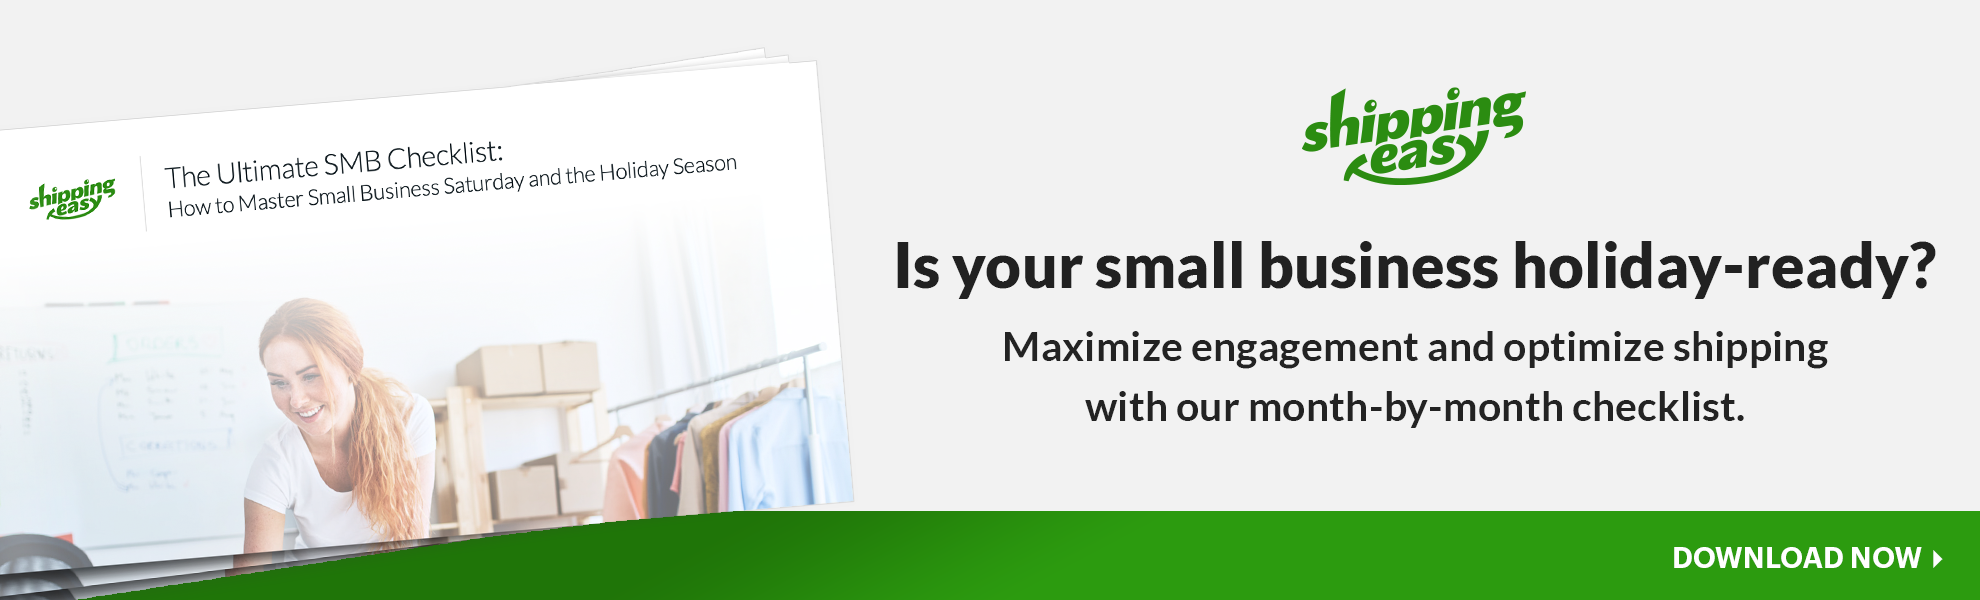 Is your small business holiday-ready? Promotional button for Shipping Easy's Ultimate SMB Checklist Ebook. Click to Download